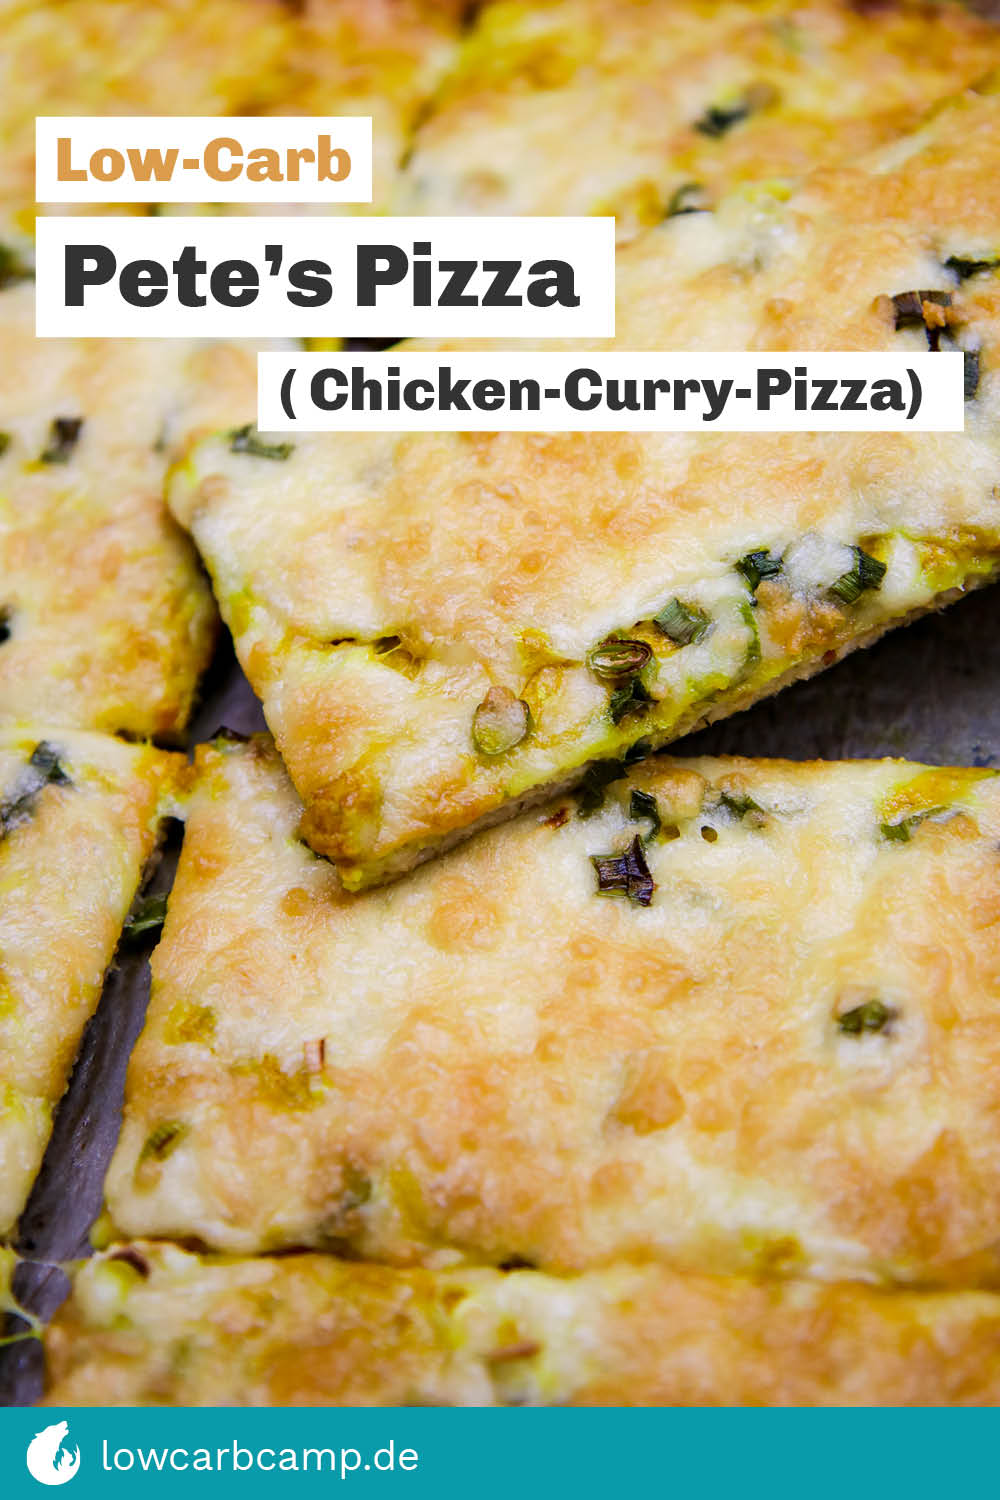 Pete's Pizza - Low-Carb Chicken-Curry-Pizza